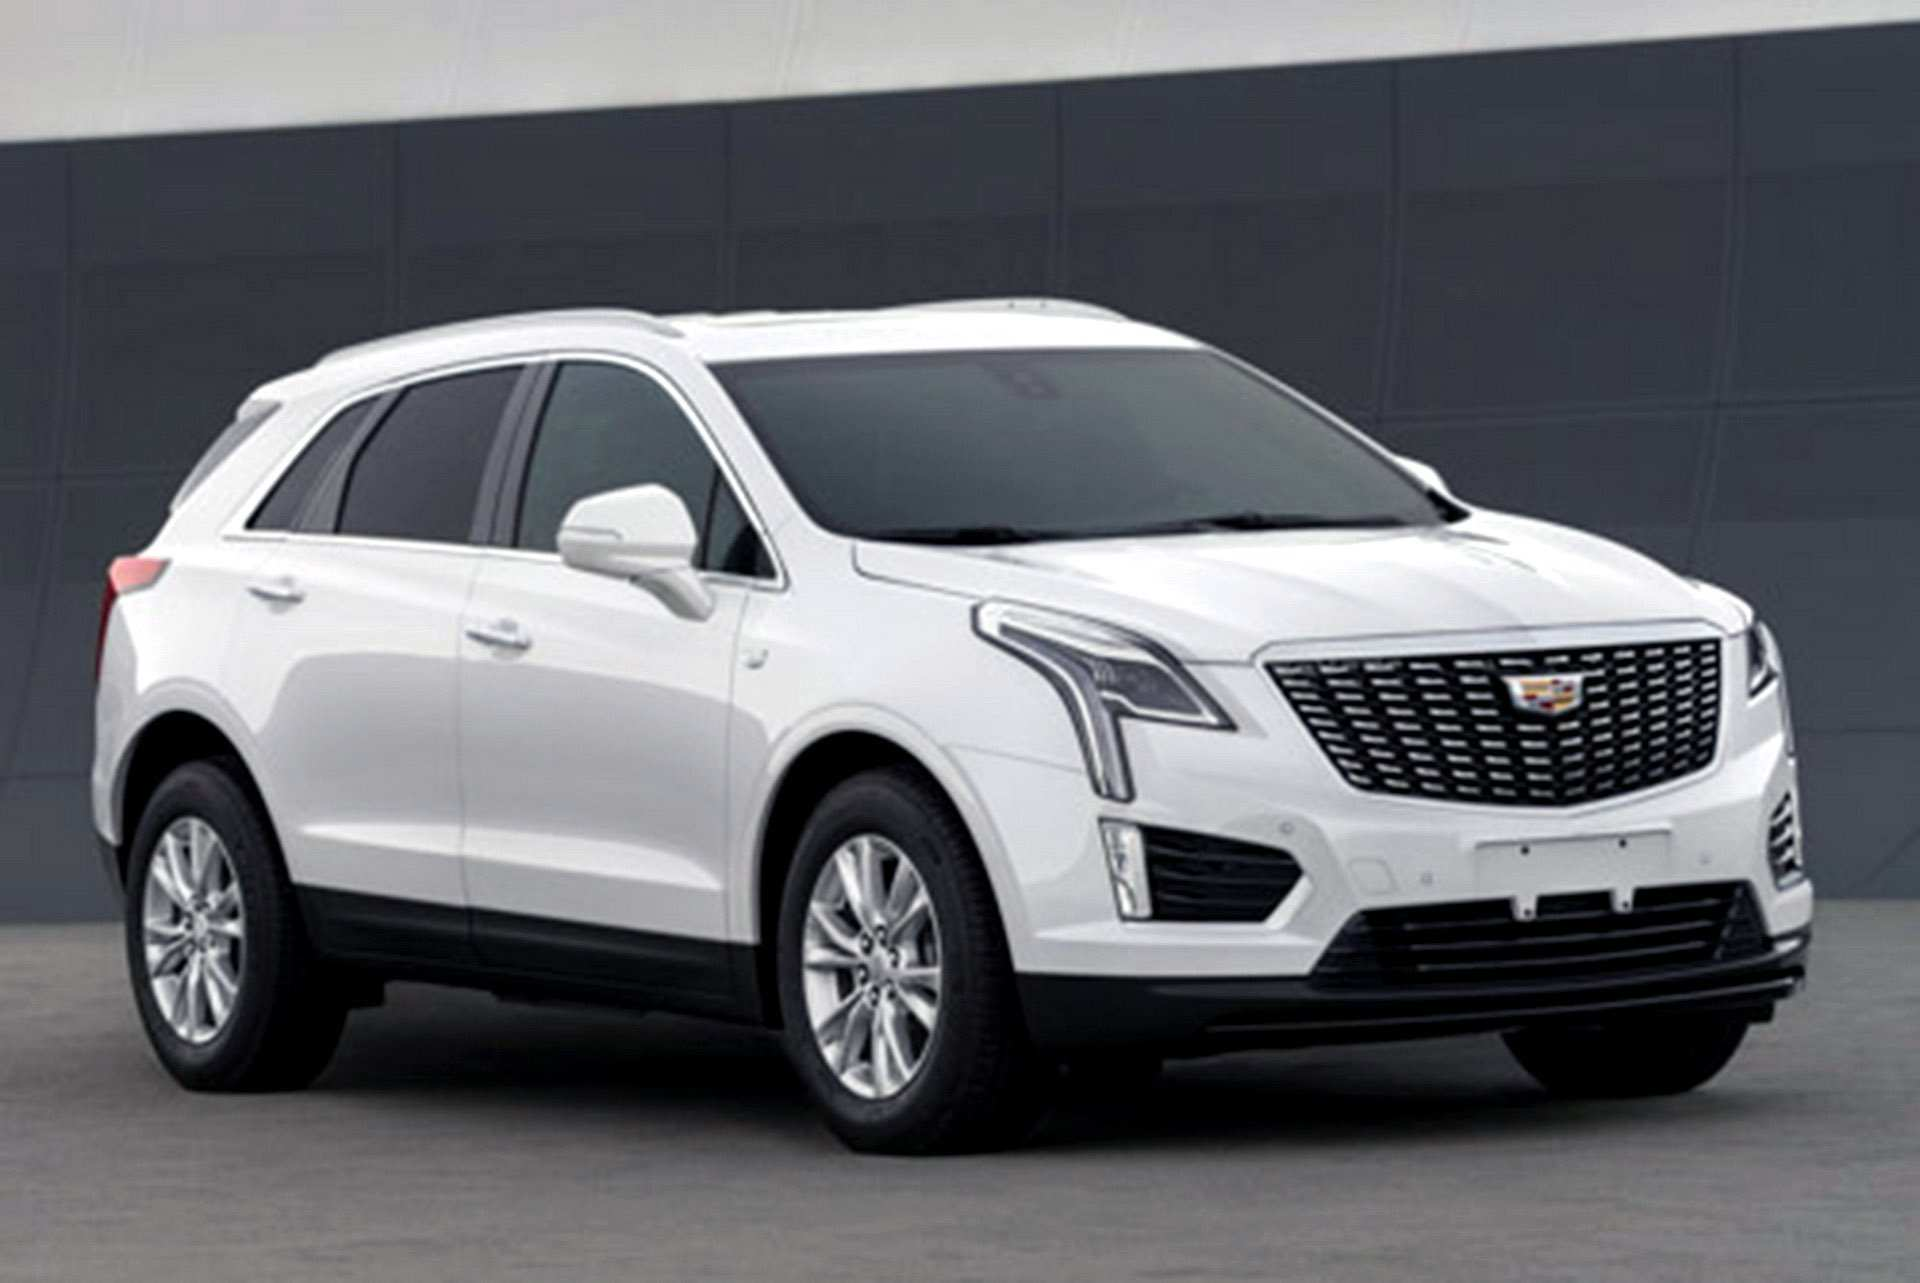 85 Best Spy Shots Cadillac Xt5 Wallpaper